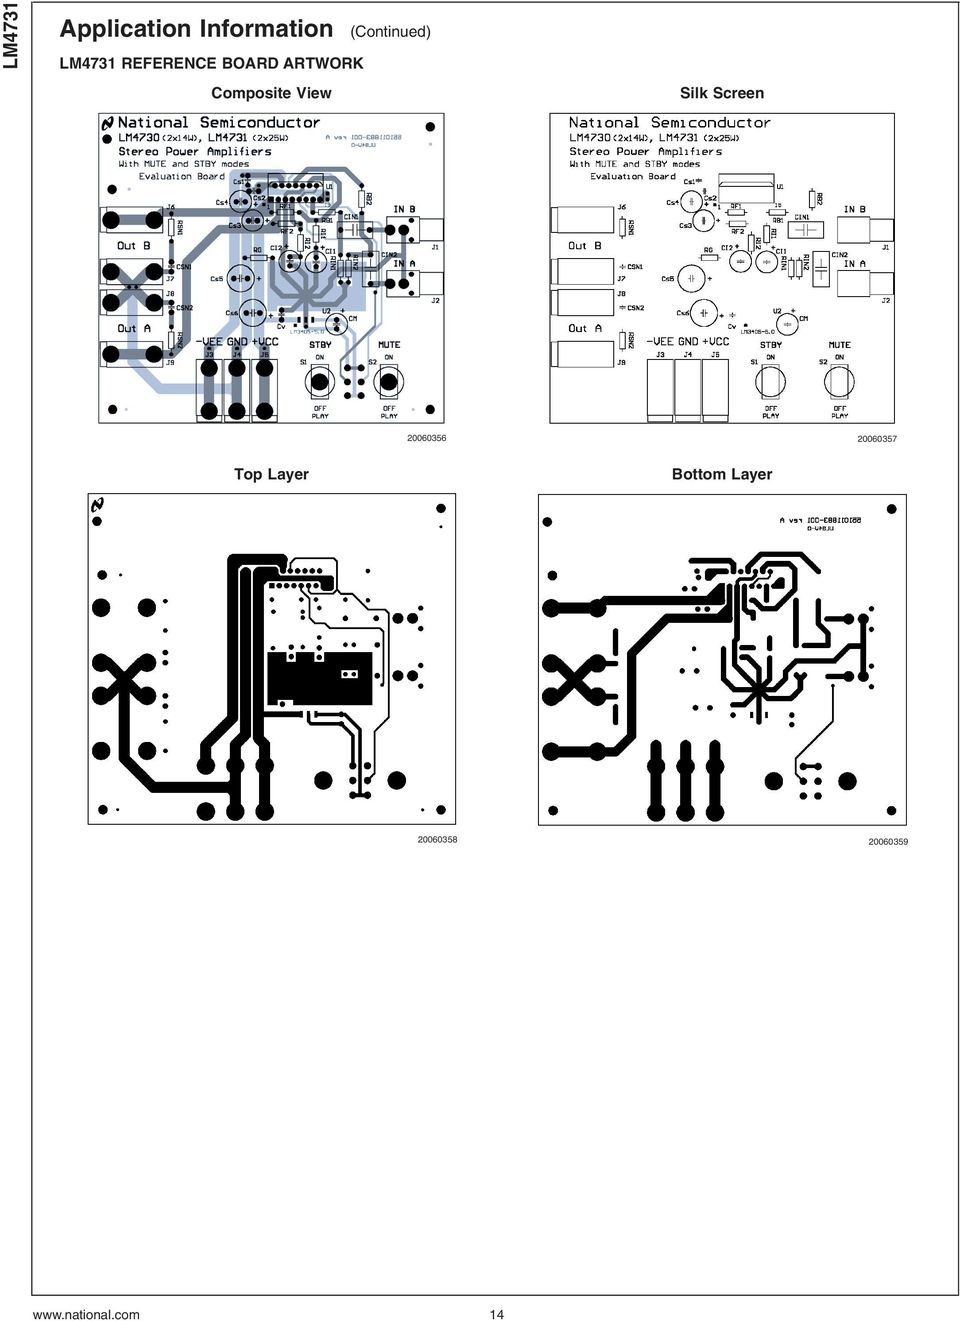 Lm4731 Stereo 25w Audio Power Amplifier With Mute And Standby Modes Schematic Circuit Diagram Using Lm4992 View Silk Screen 20060356 20060357 Top Layer